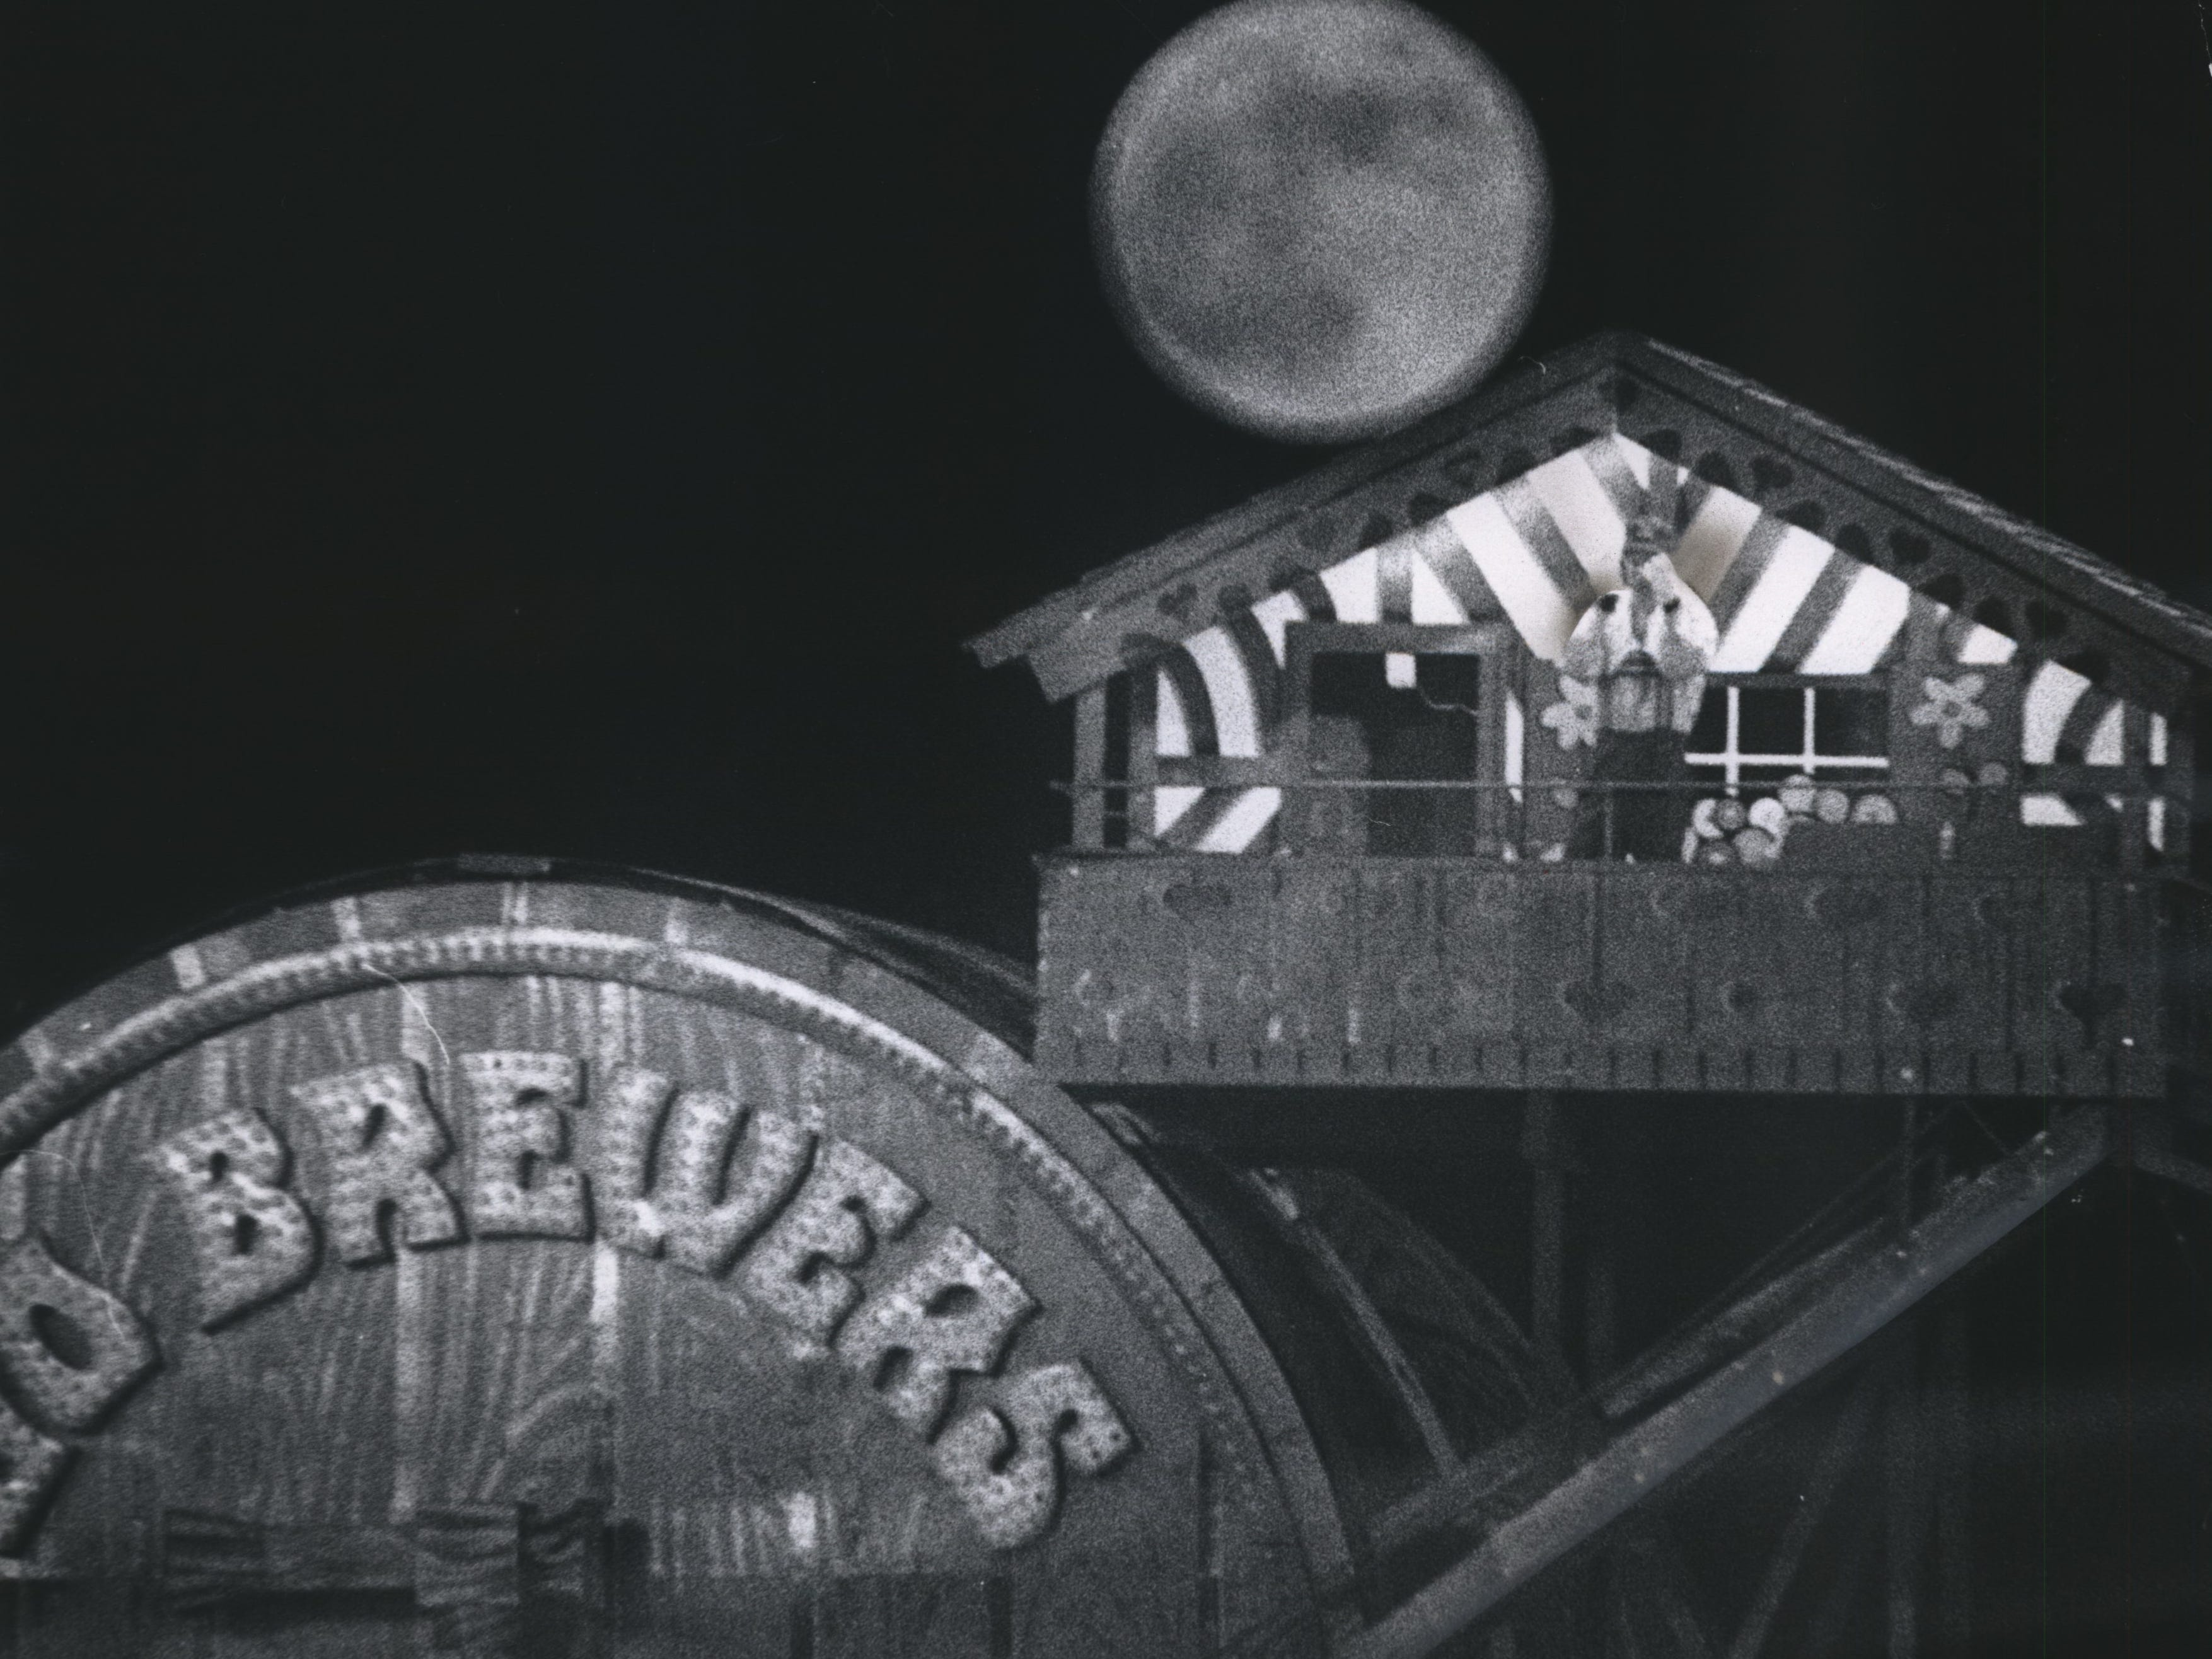 Bernie Brewer enjoys a night on the porch of his chalet above the bleachers (and below the moon) at County Stadium. Bernie's upstairs apartment stood above the ballpark through the 1974 season. This photo was published in the June 7, 1974, Milwaukee Journal.